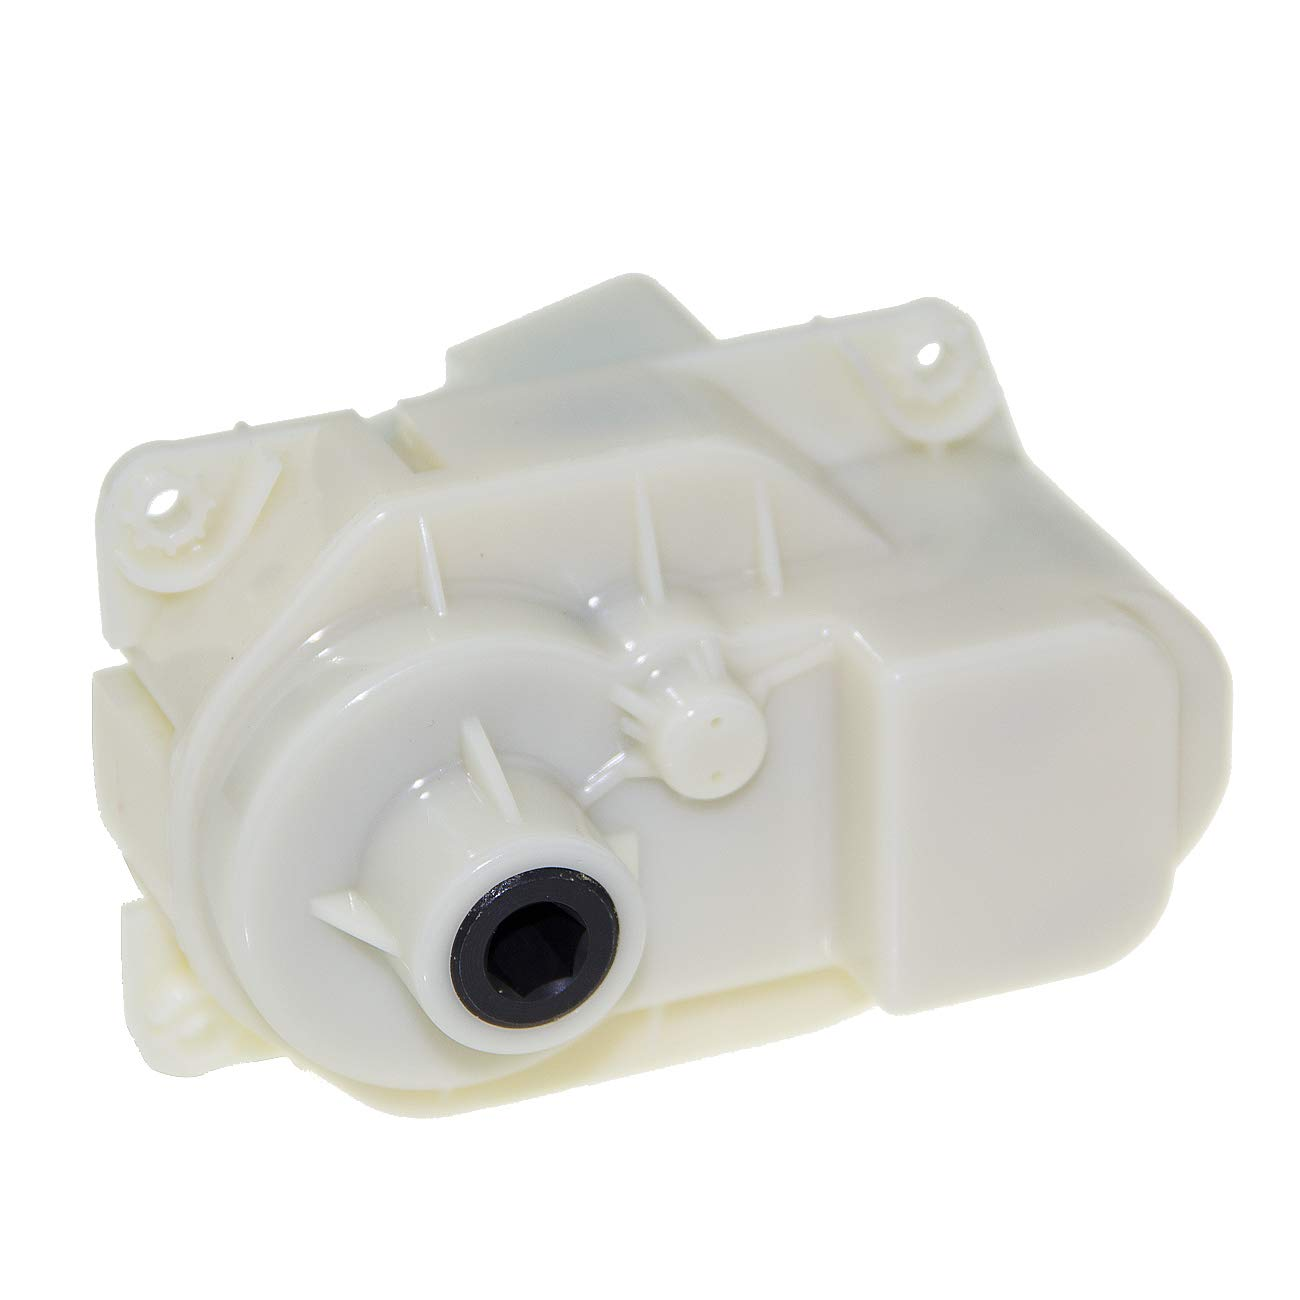 W10822606 Refrigerator Ice Auger Gear Motor for Whirlpool,Sears AP5985114, W10271506 1550092,PS11723175